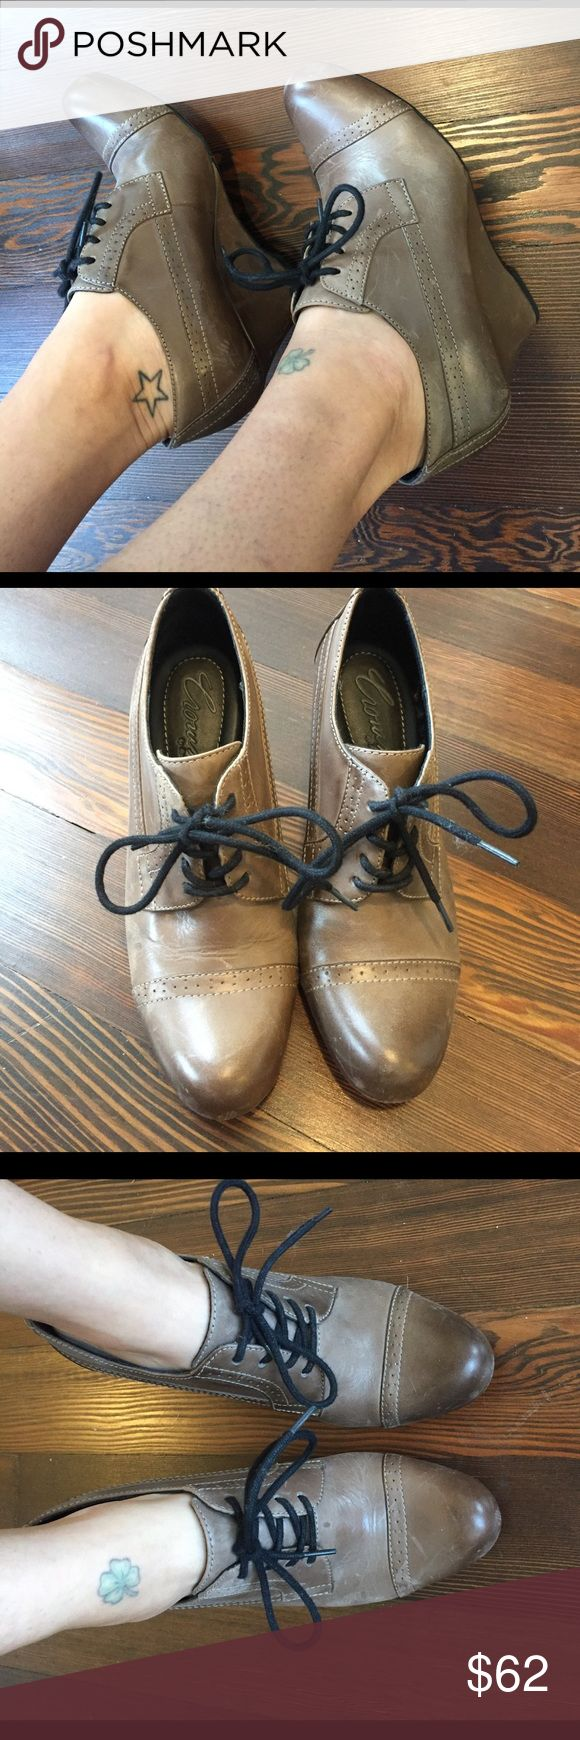 Crown by Born oxford wedge Classic. Beautiful. Comfortable. Leather. This is the best way to describe these lovely shoes. Only worn a few times. Light wear on the soles. Some scuffing on the shoe (a nice polish should do the trick), otherwise in great condition. Size 6.5/37 Born Shoes Wedges